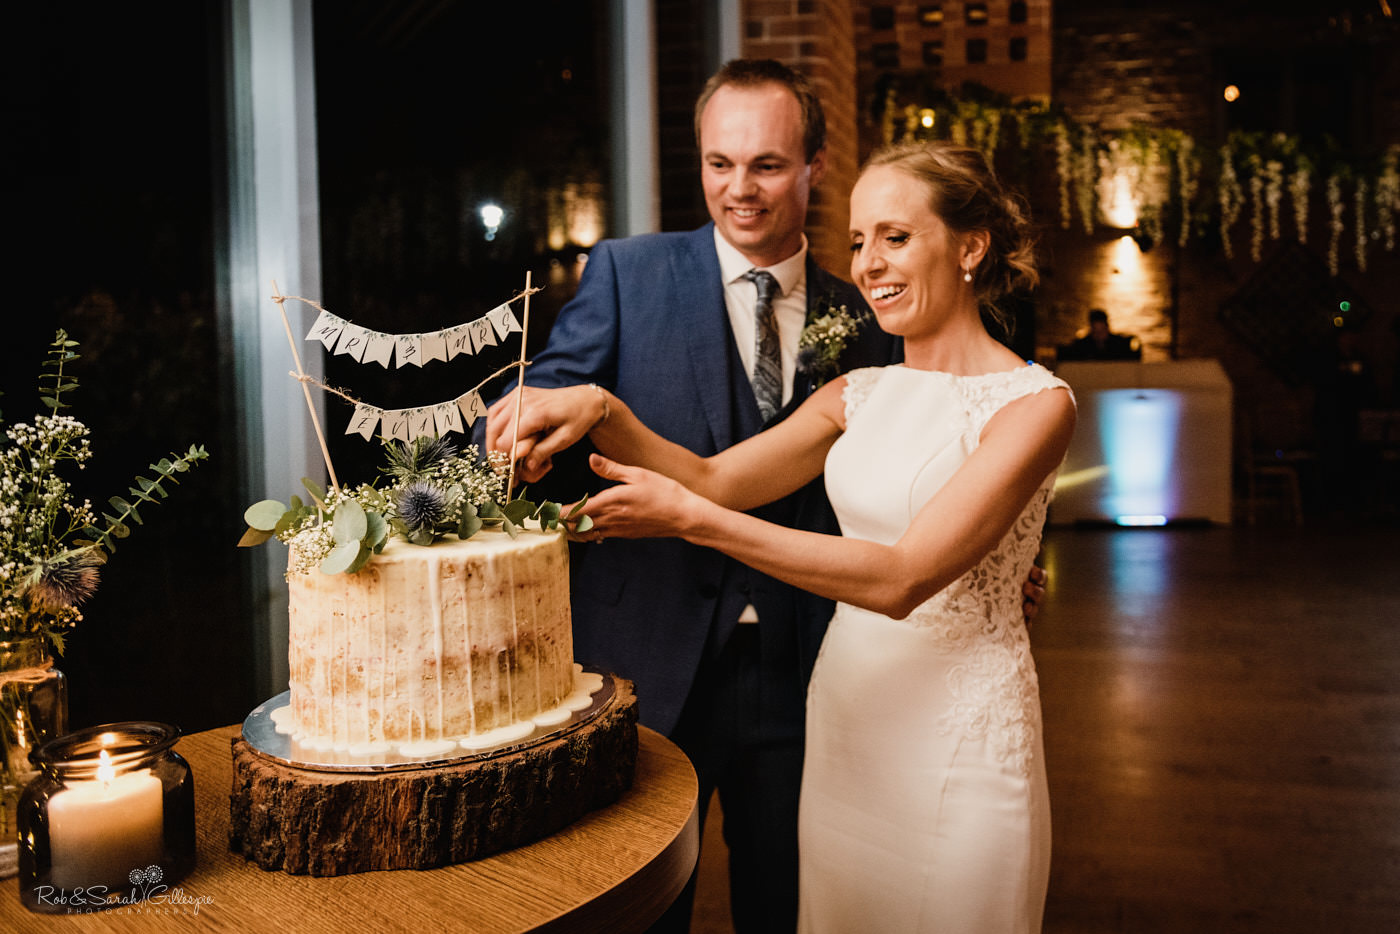 Bride and groom cut wedding cake at Swallows Nest Barn